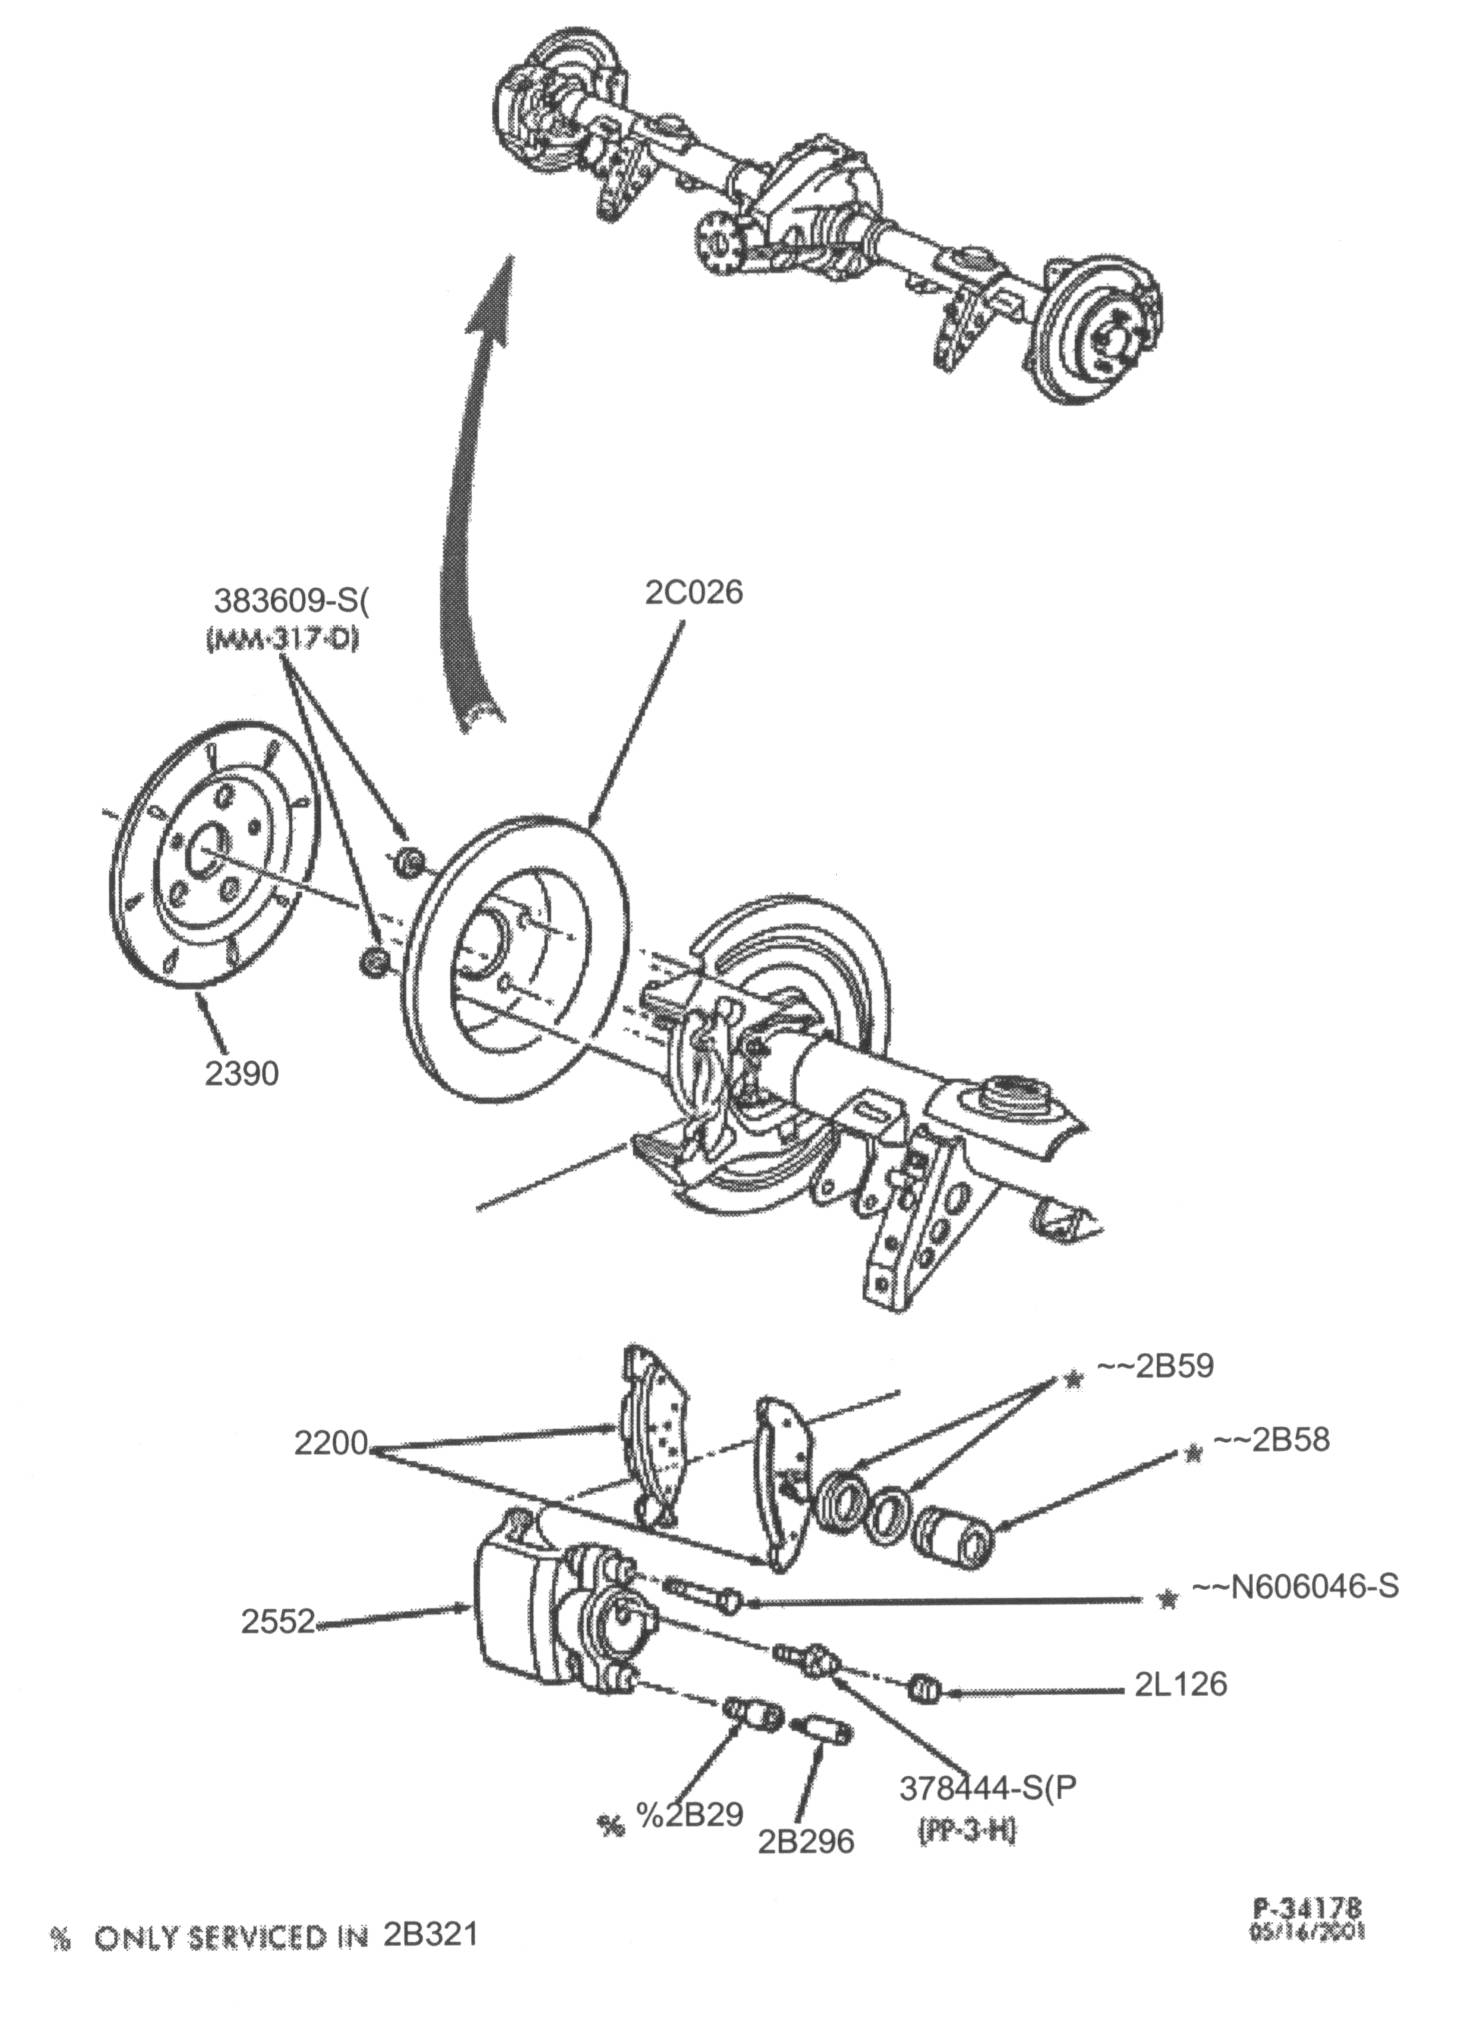 Ford Crown Victoria Brake Service Notes Drum Diagram Rear Brakes P Both Pads And Shoes In The Are Engaged During Normal Braking Minature Set Of Which Contacts Inside